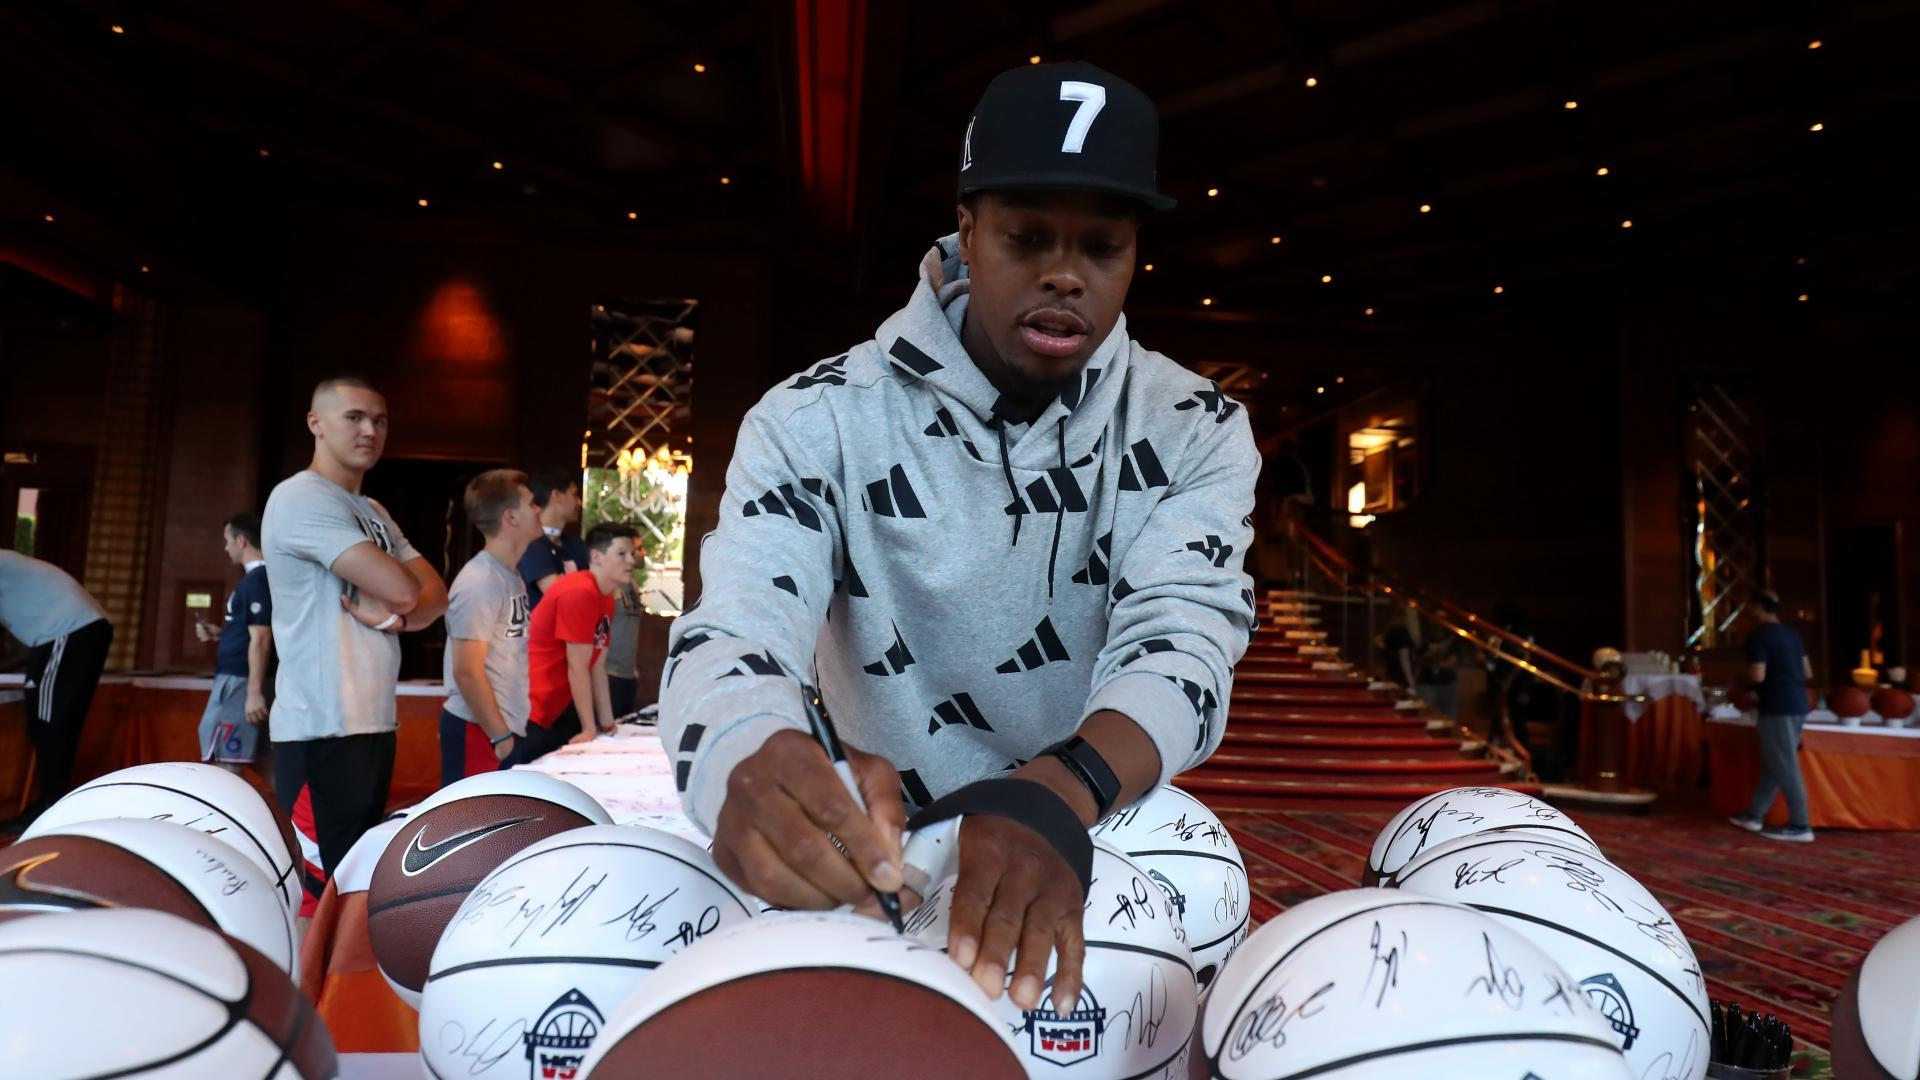 Morning Tip Mailbag: Your questions on Kawhi Leonard's future, the